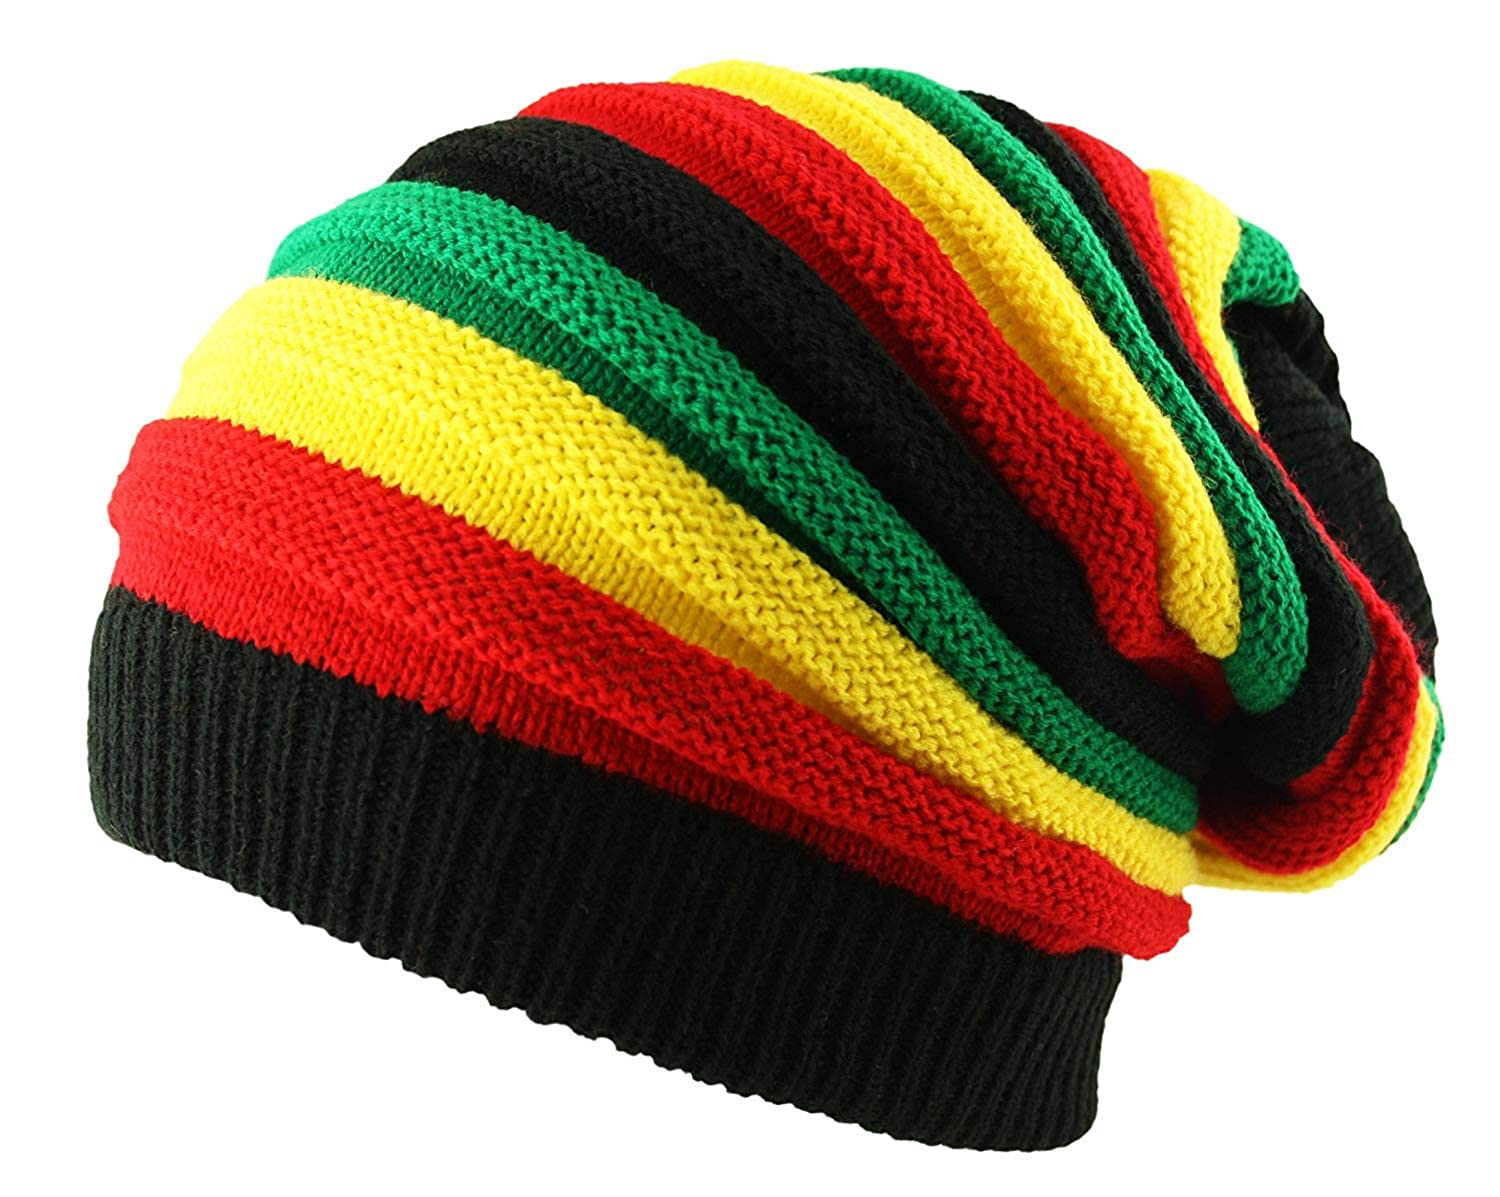 4411d6c7a CRAZY LIZARD Rasta Knitted Oversized Rasta stripe Slouch Beanie Cap Hat  without Peak in Black (Yellow/Red/Green)